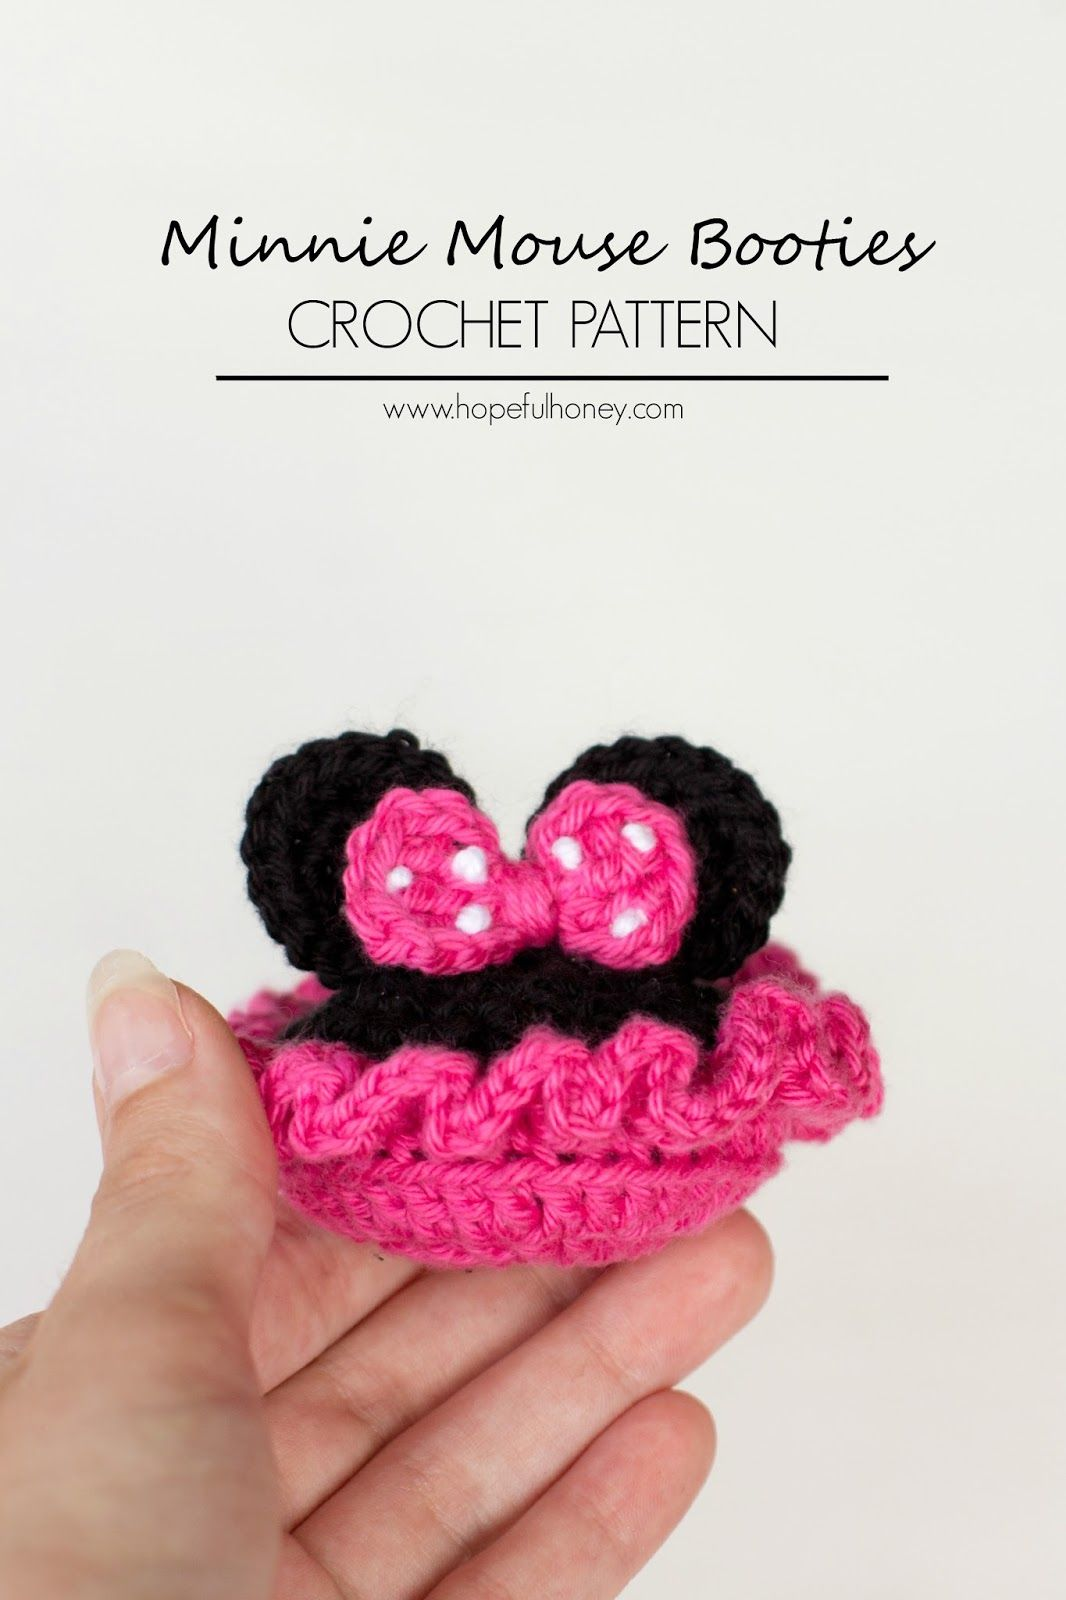 Minnie Mouse Inspired Baby Booties Crochet Pattern | Strickprojekte ...